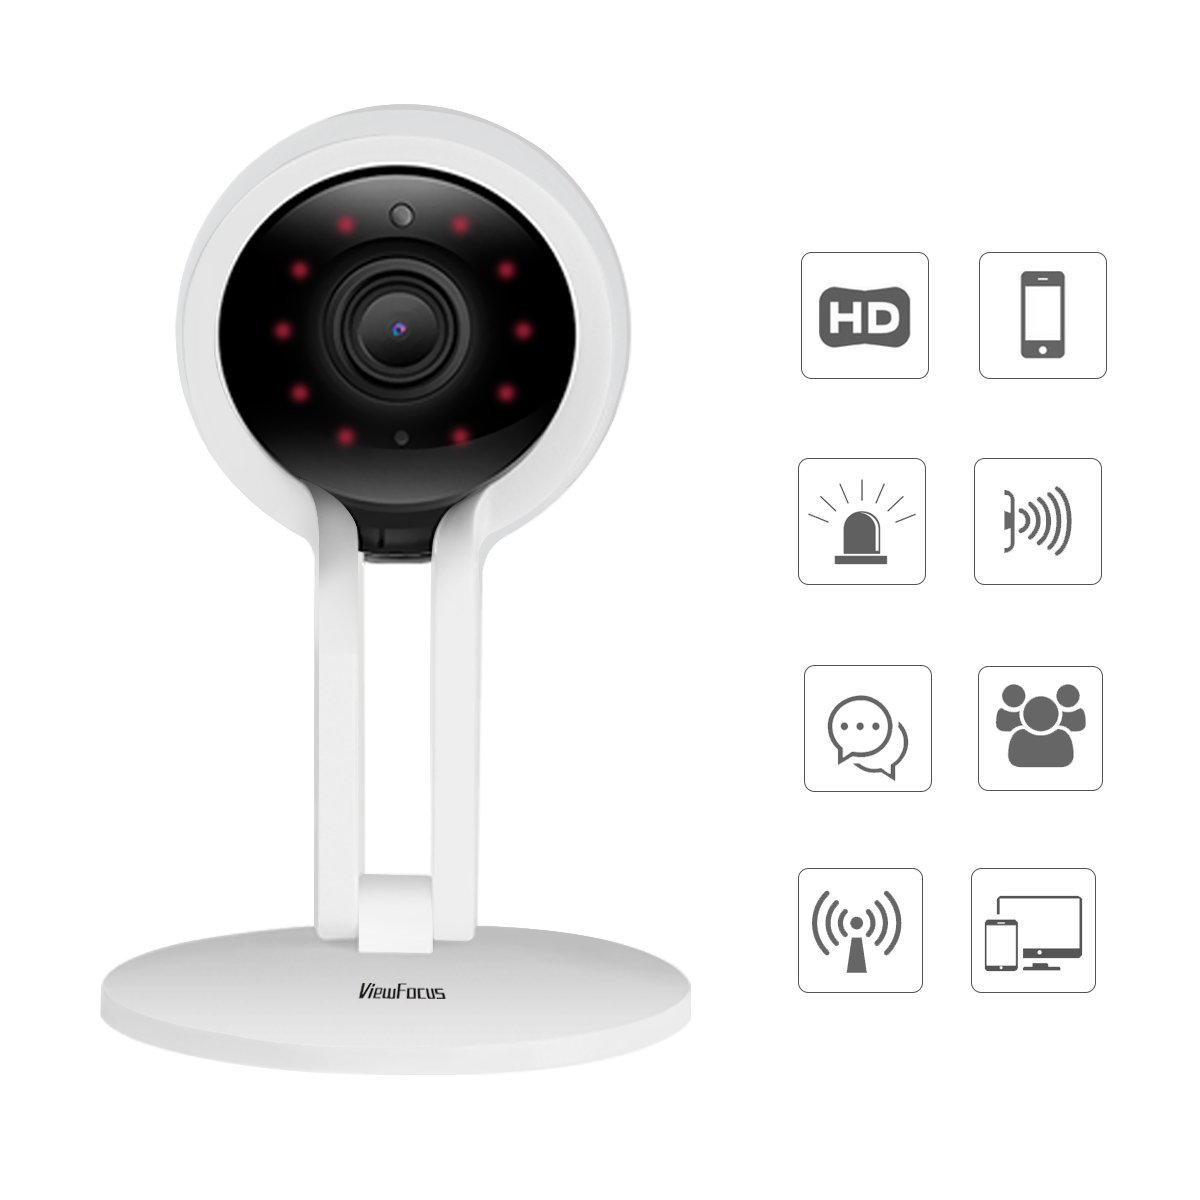 ViewFocus Security Camera, Home Wi-Fi Wireless IP Indoor Camera System with Motion Detection, Night Vision for Baby/Pet / Front Porch Monitor (720P)